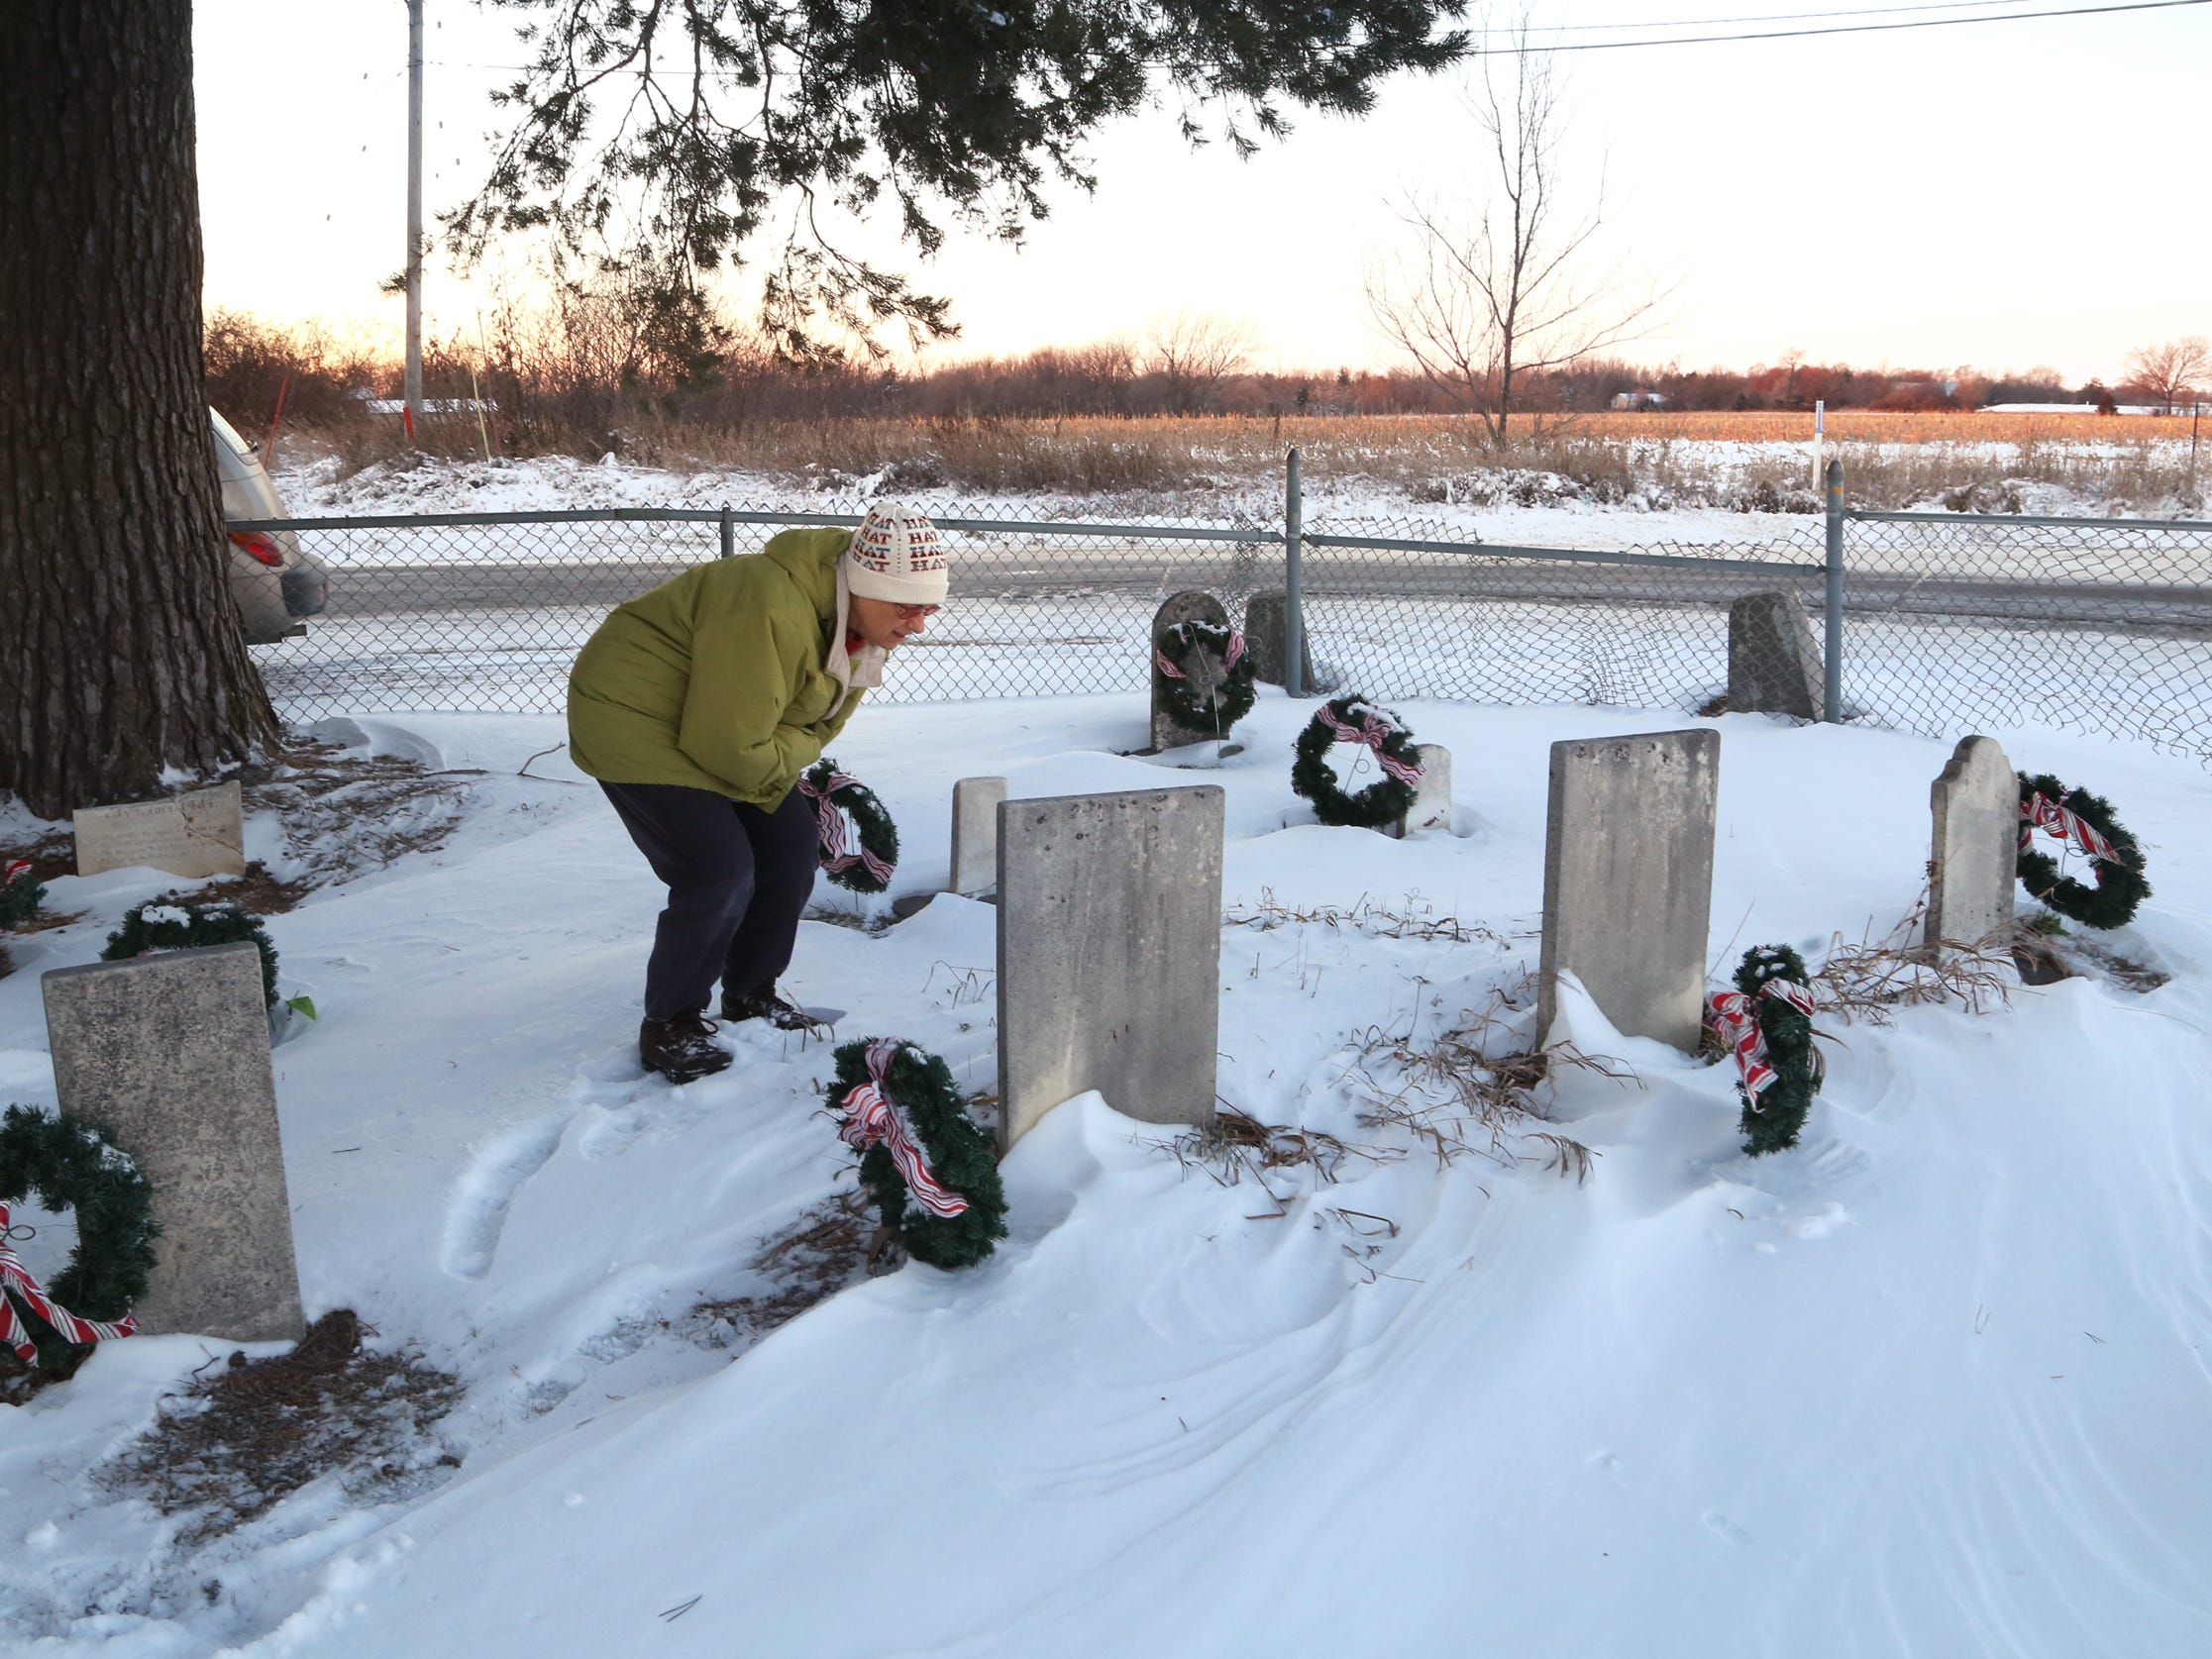 From 2013: Members of the Huston's Plot chapter of The Questers care for the tiny Huston Cemetery, located in the middle of Mills Civic Parkway in Dallas County. Flo Dietz, shown here, and other members have placed wreaths and decorated the cemetery for various holidays.